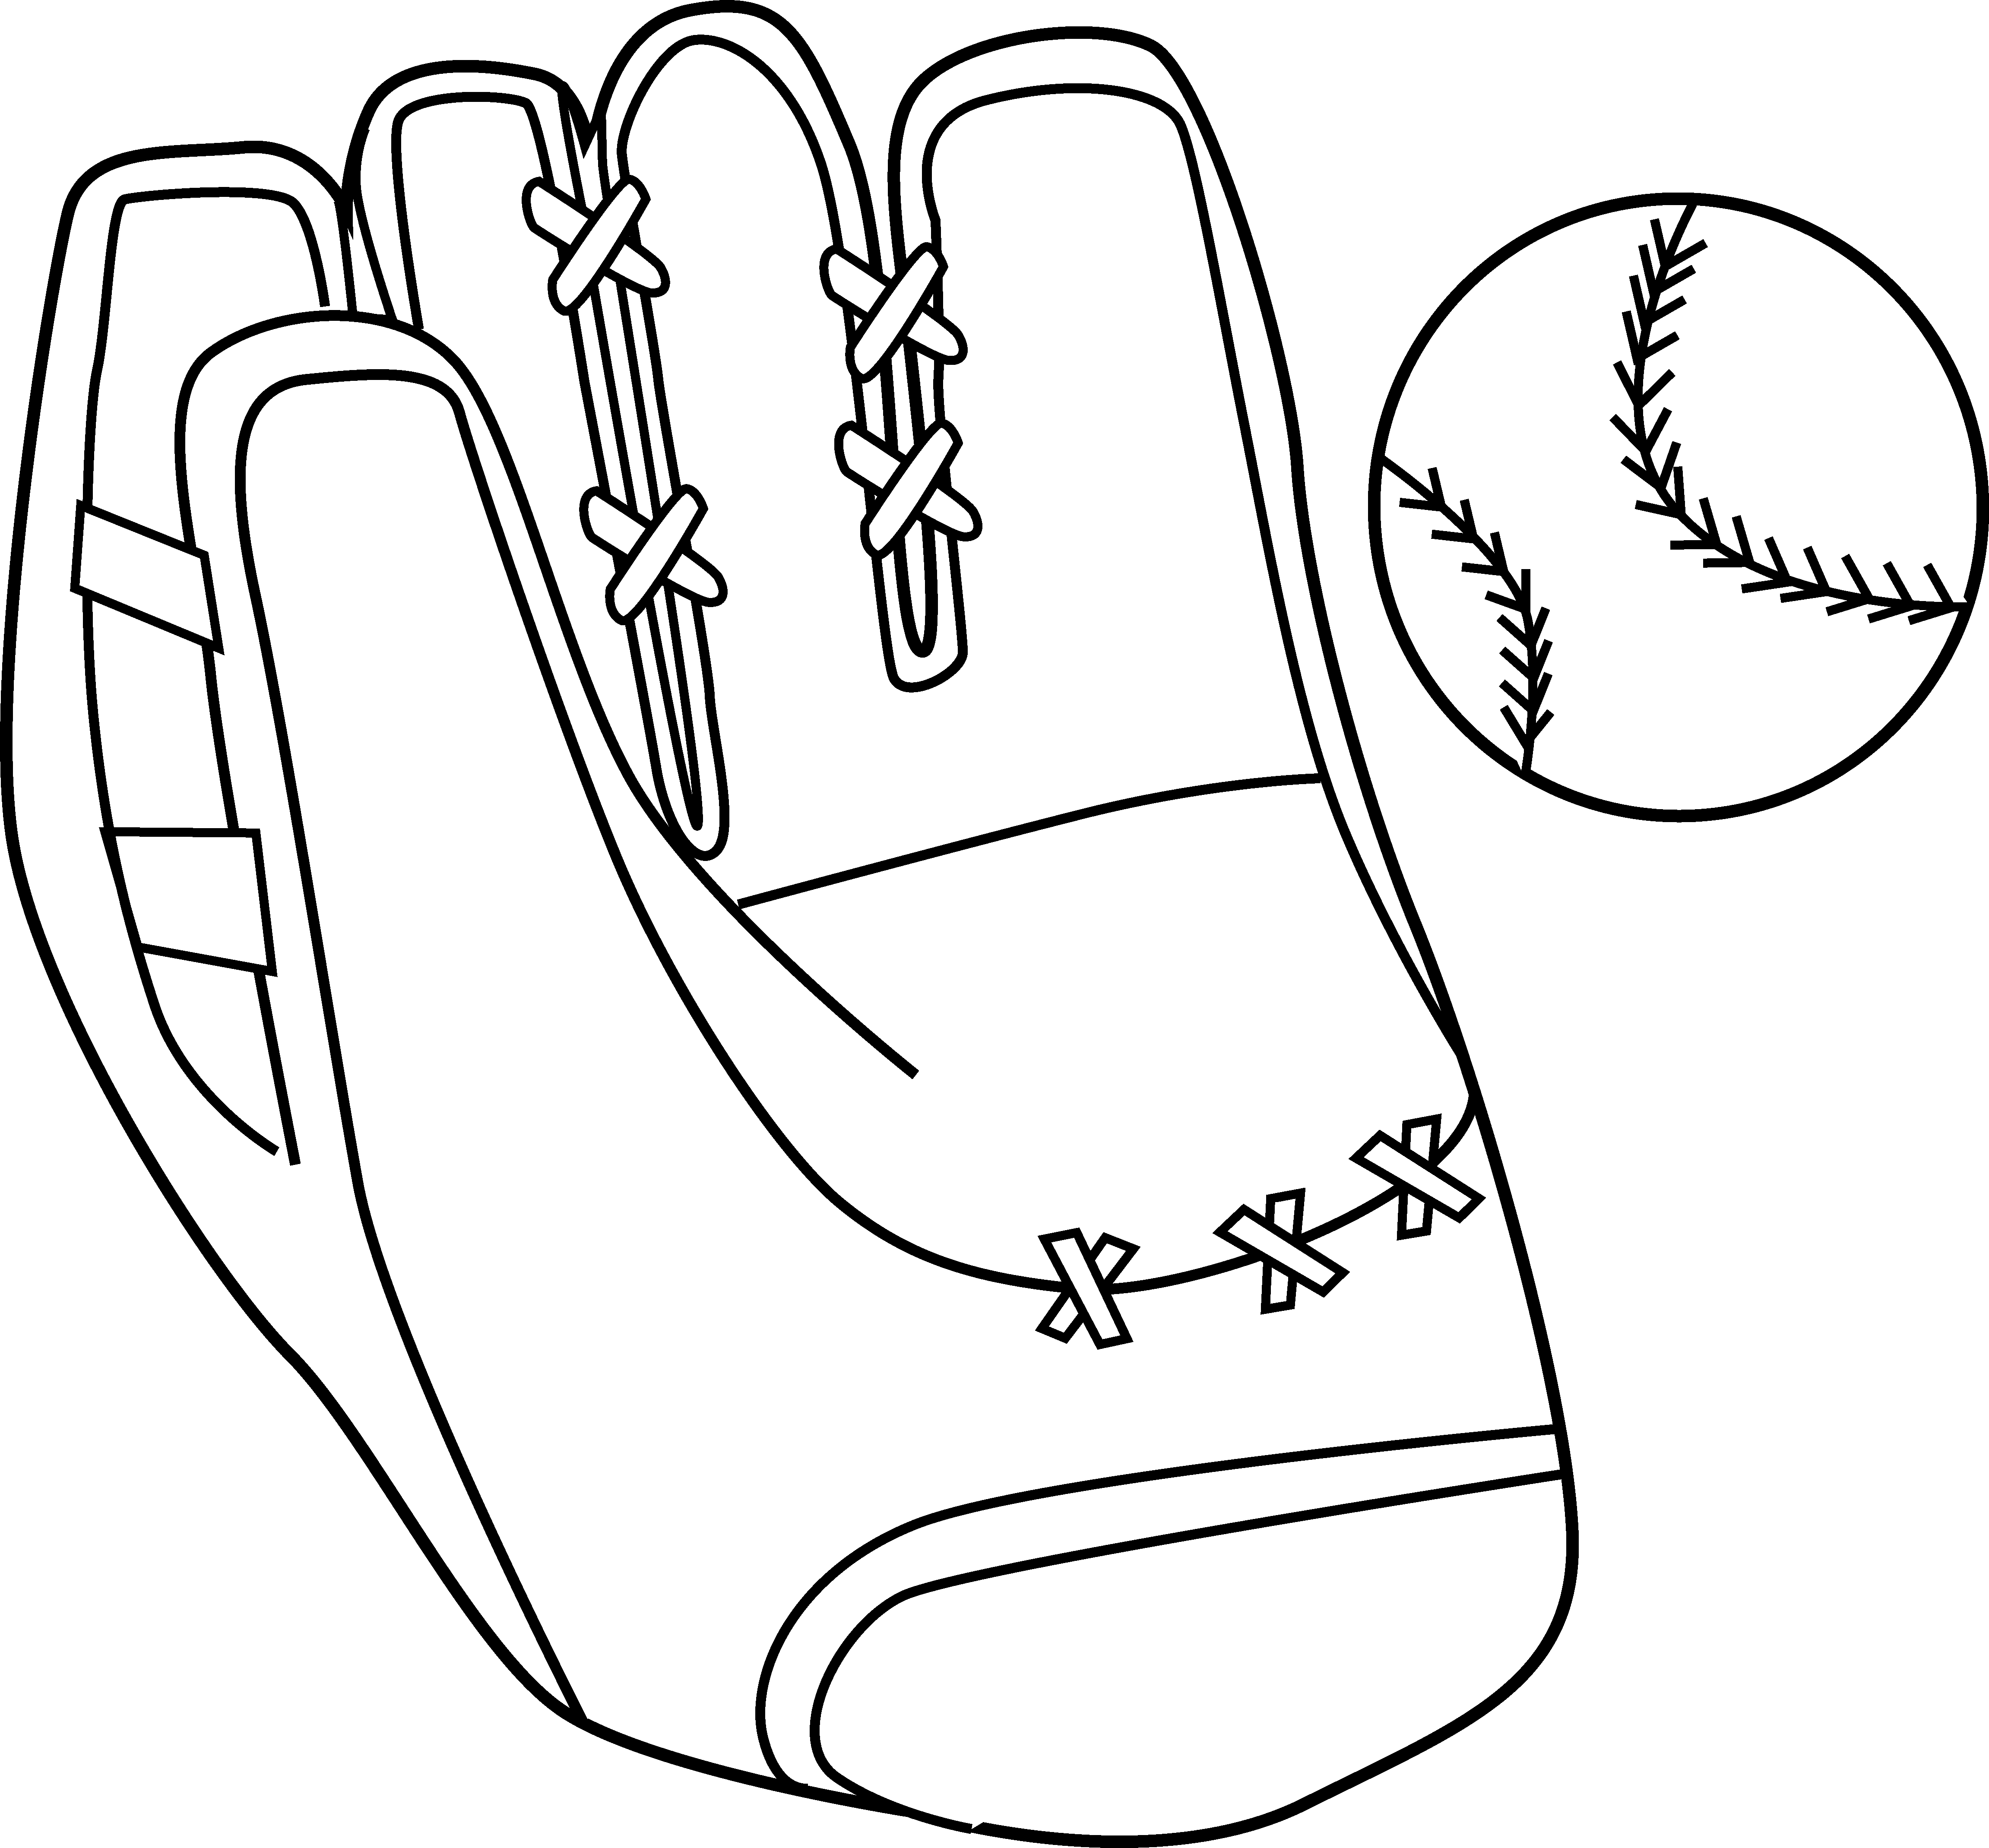 Clipart of baseball gear picture download Baseball Ball Drawing at GetDrawings.com | Free for personal use ... picture download